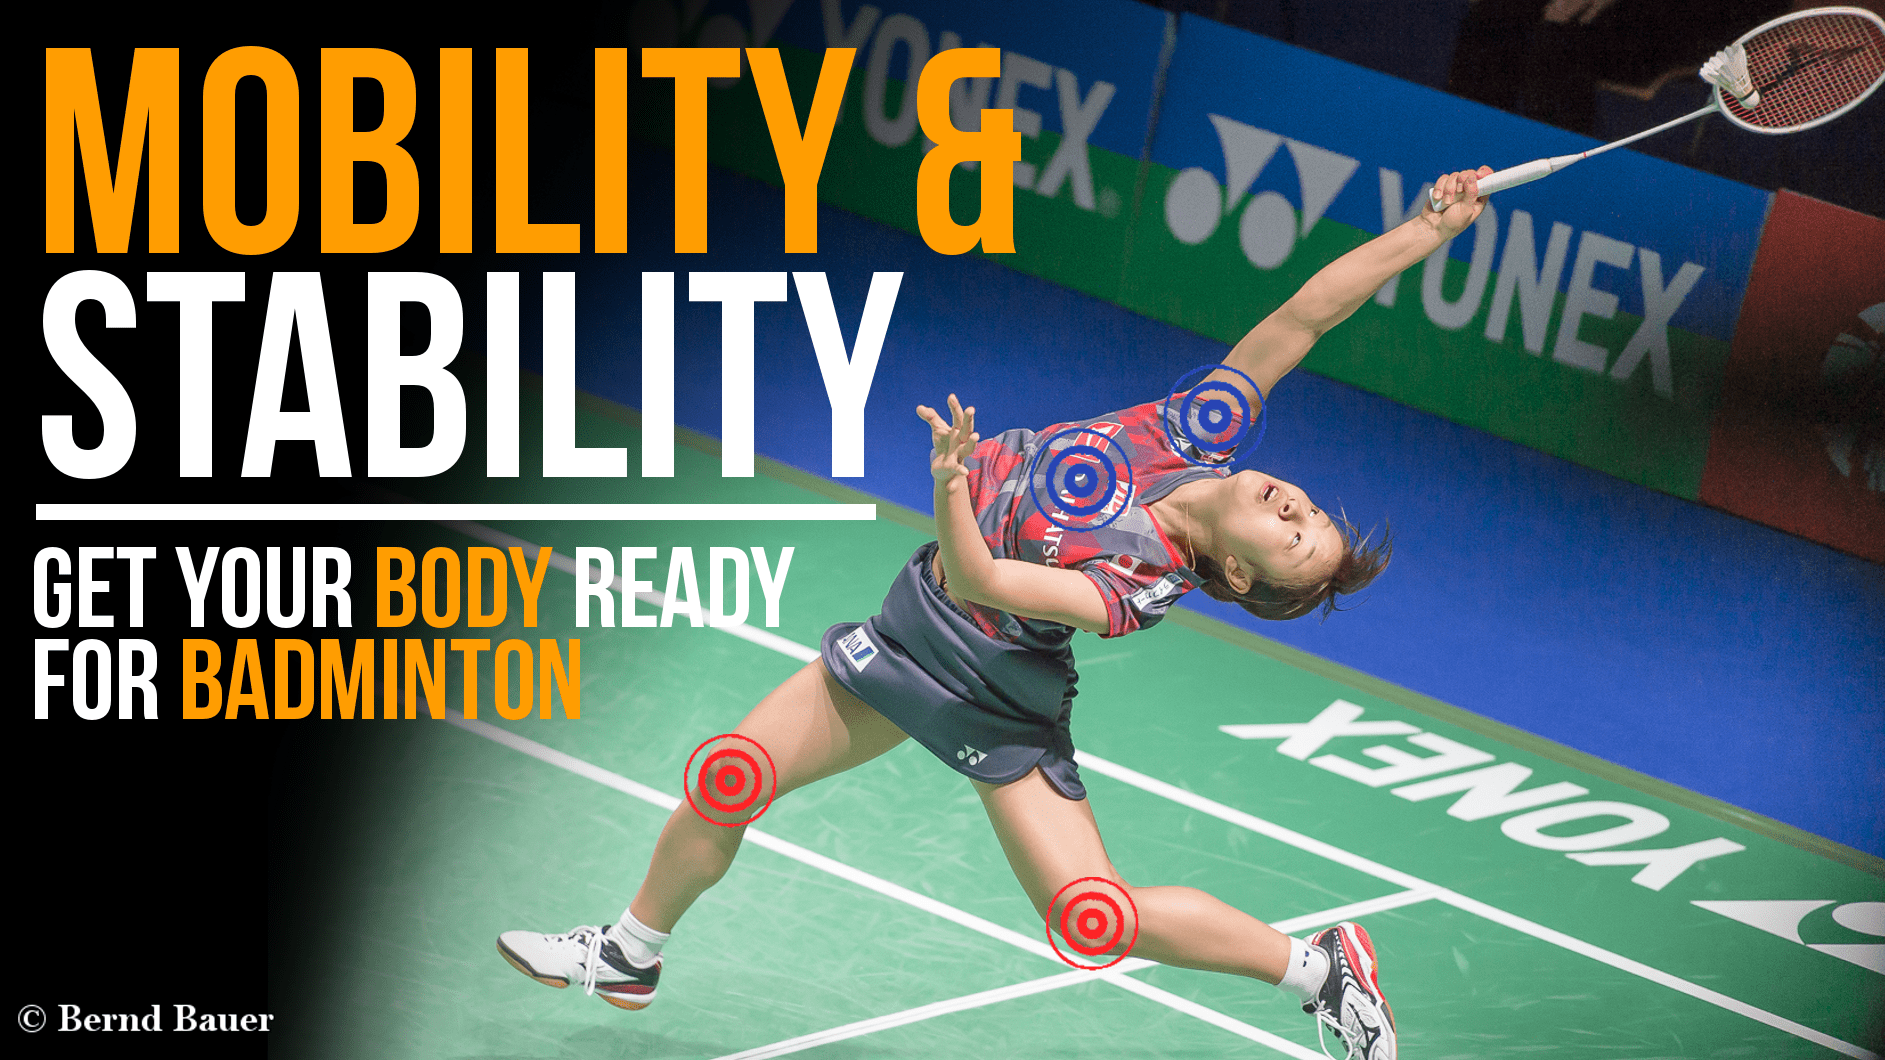 Mobility & Stability: Get your body ready for Badminton